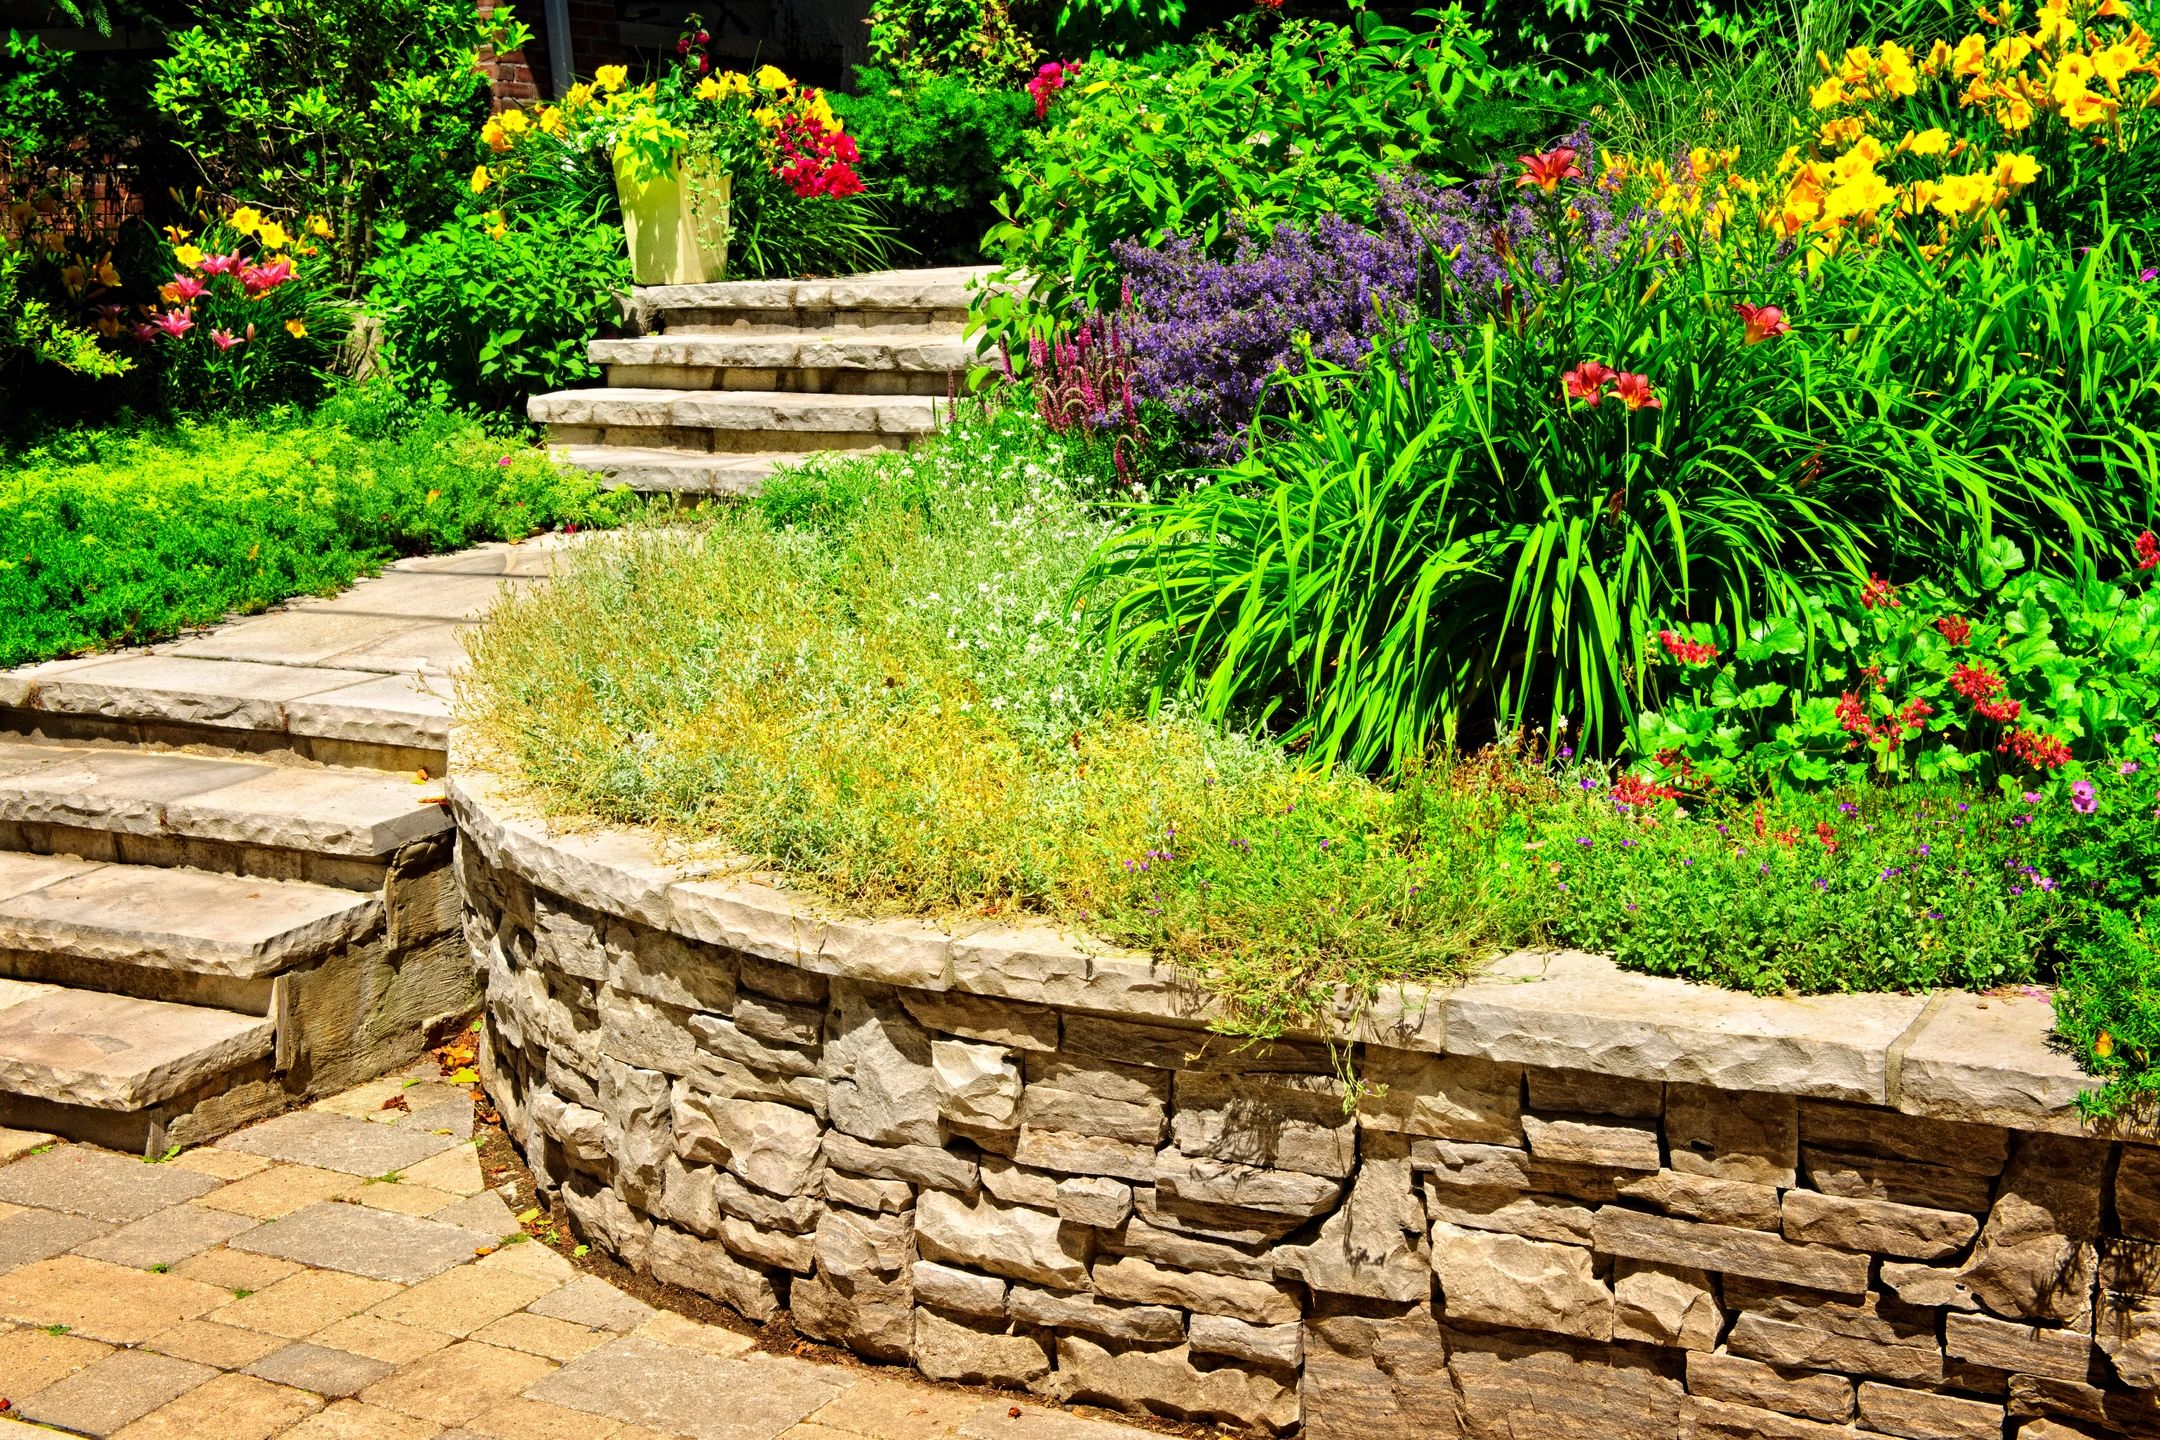 Services for your home and business garden - retaining wall and stone staircase.